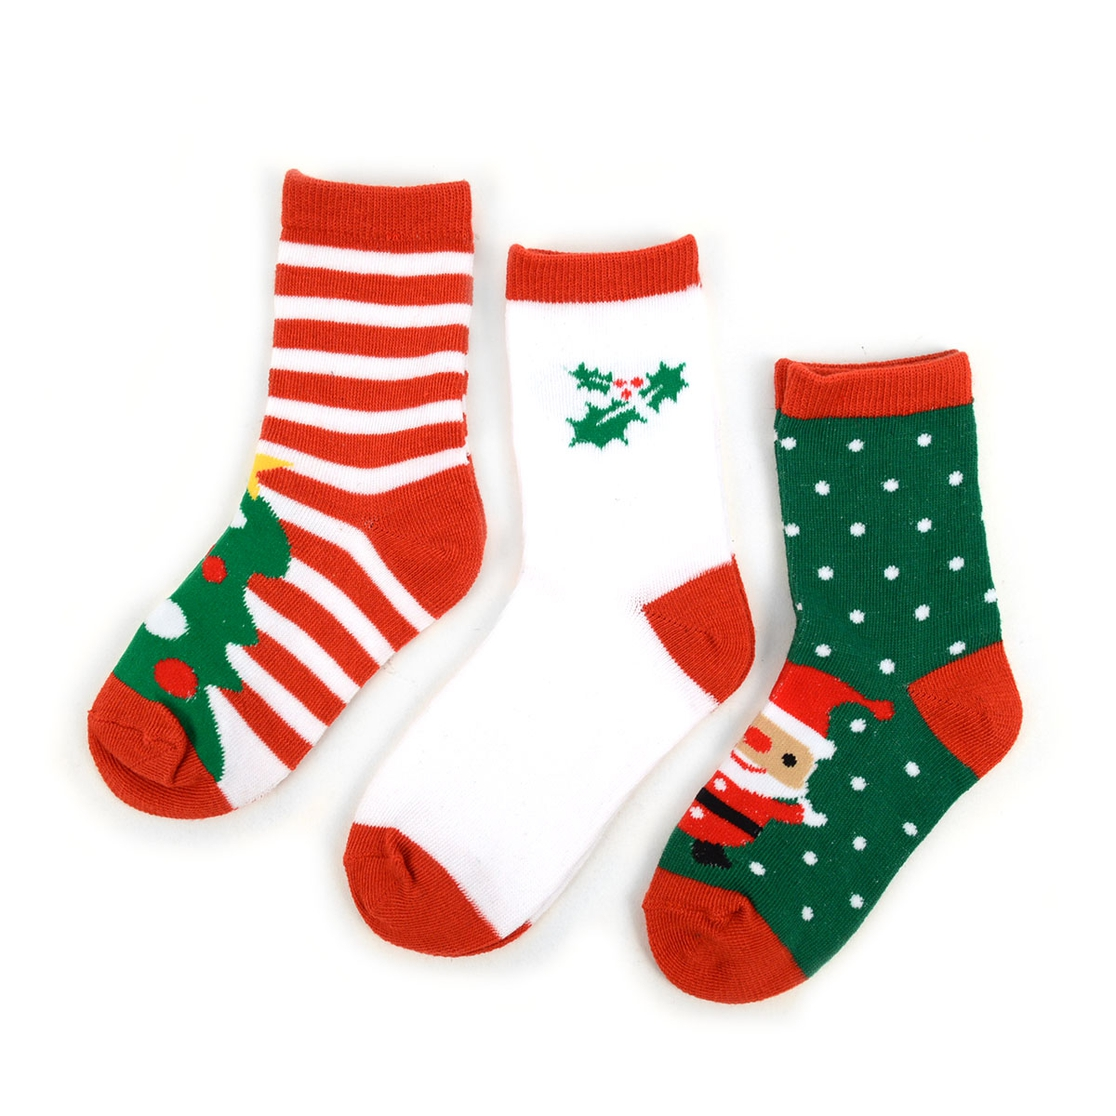 SELINI NY Wholesale Kids Christmas Holidays Crew Socks | Orangeshine.com